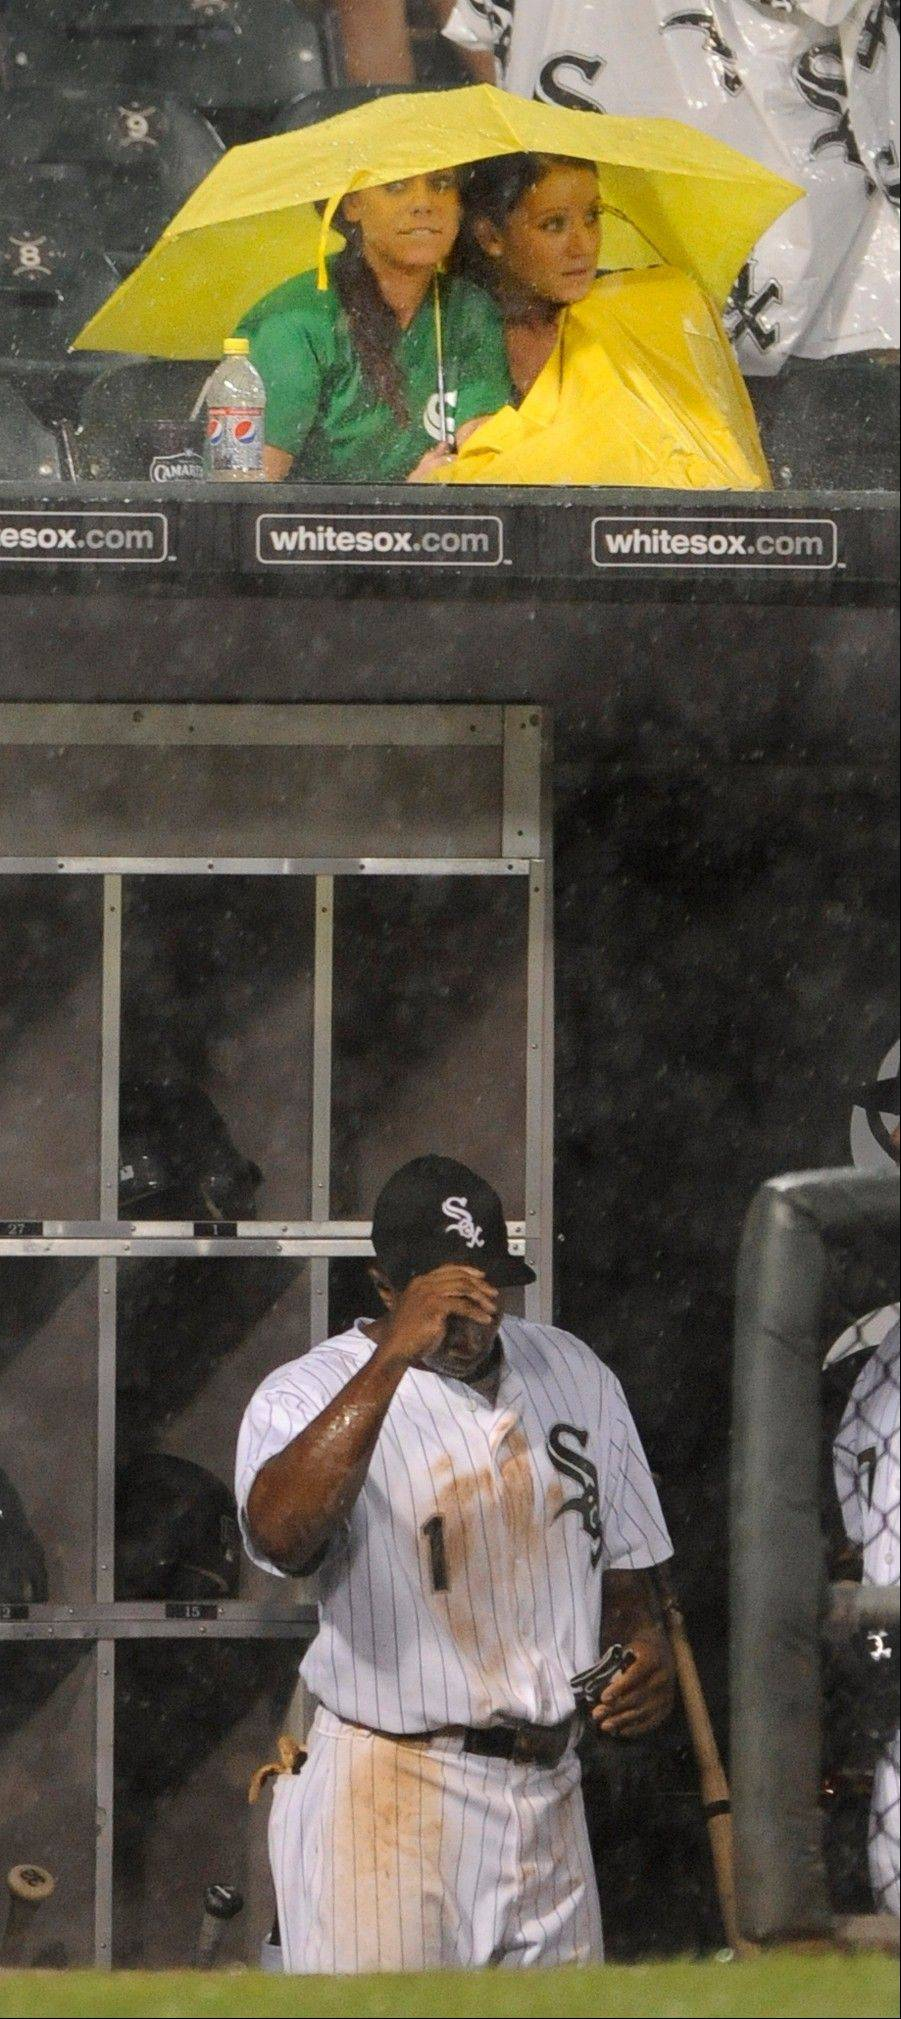 Juan Pierre waits out the rain delay in the dugout while two White Sox fans take shelter Saturday at U.S. Cellular Field.